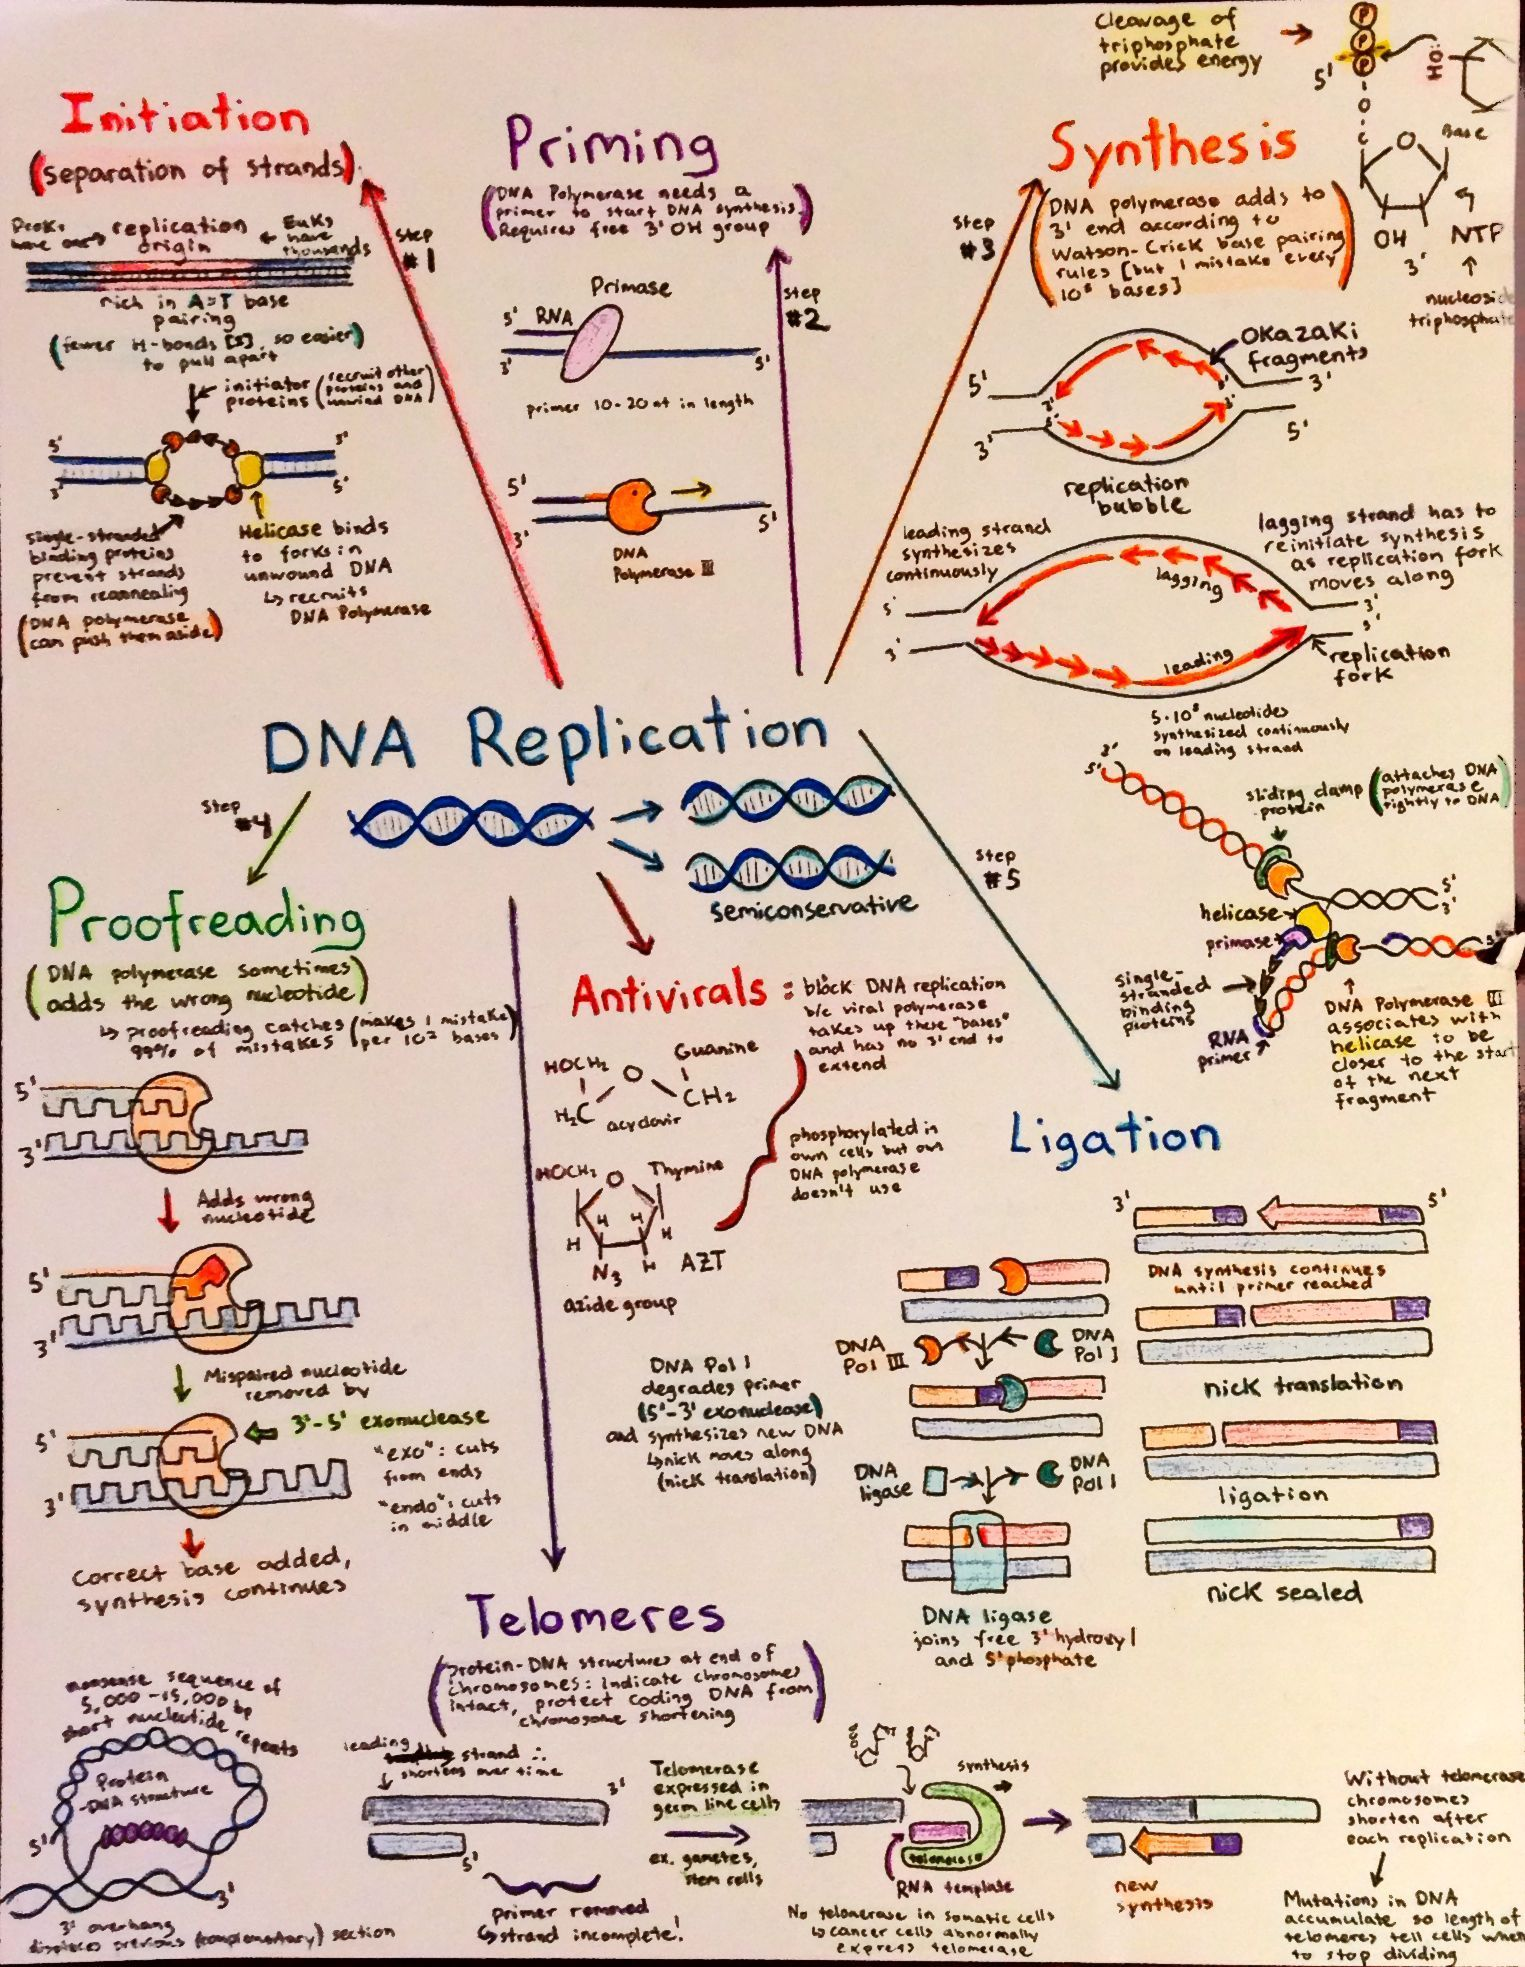 introductory biochemistry flowcharts dna biology and science introductory biochemistry flowcharts more l dna replication